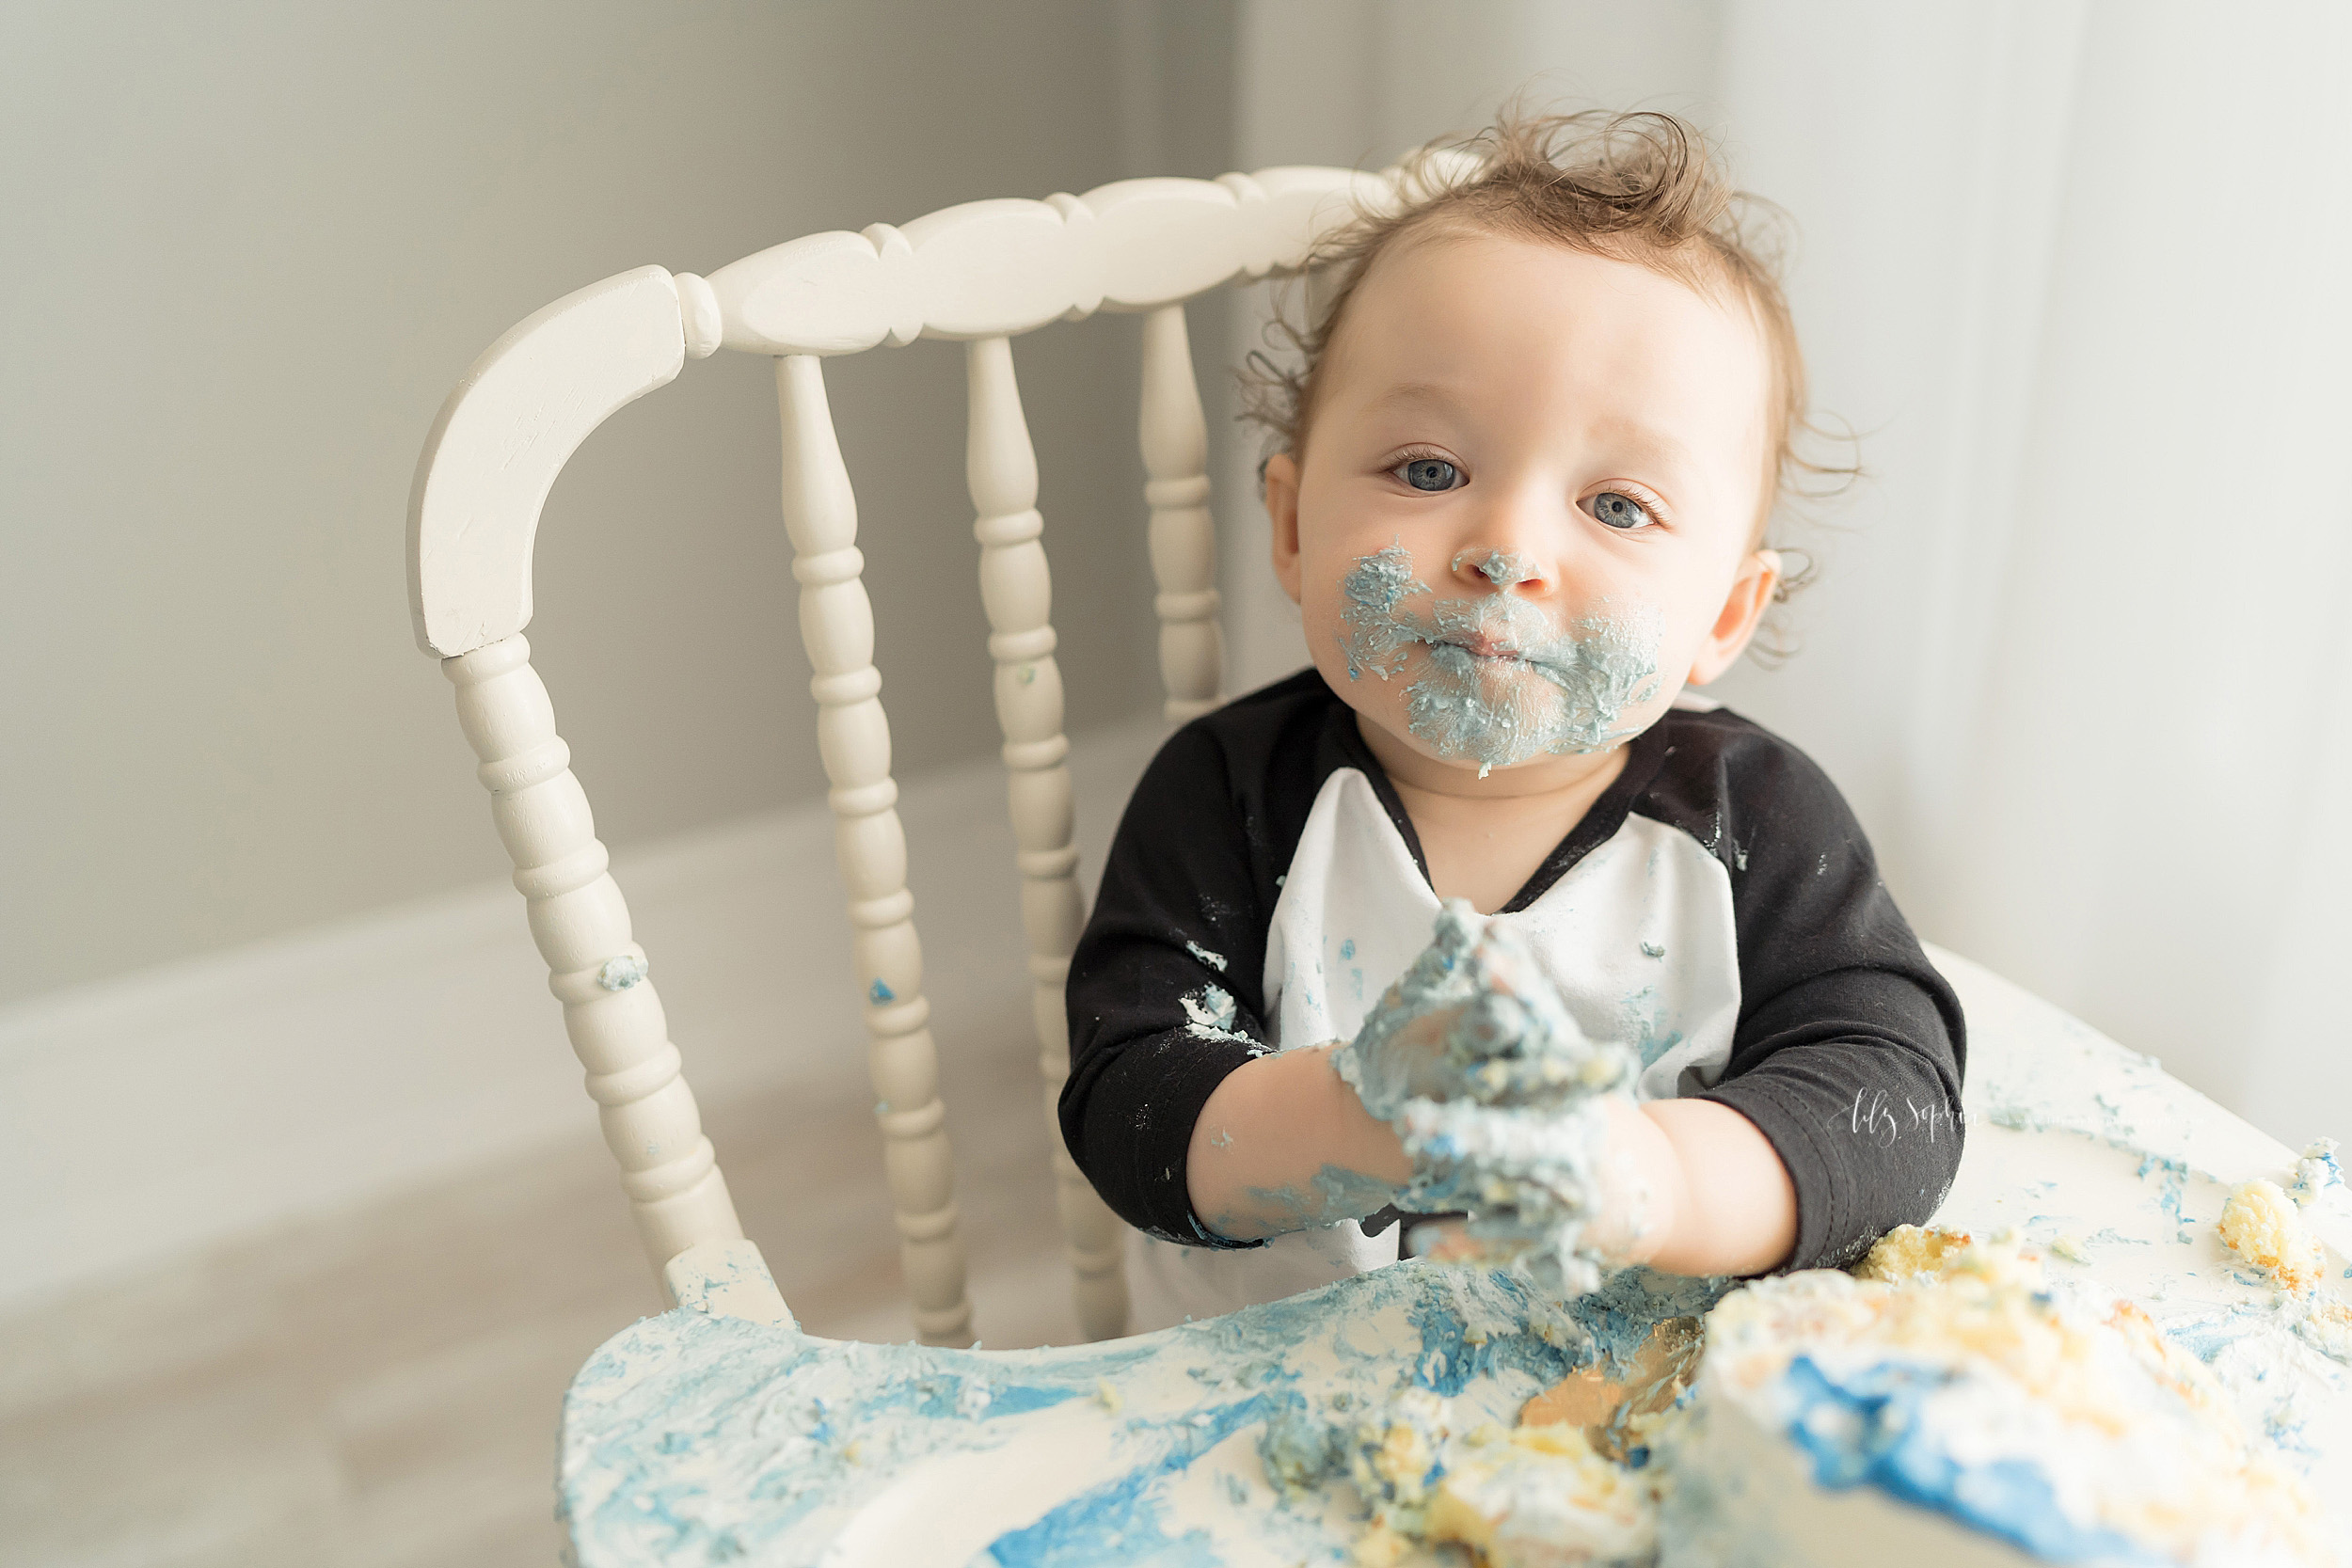 Cake smash photo of a one year old boy taken in a natural light Atlanta studio.  The happy curly haired little boy is sitting in an antique high chair with blue icing on his face and hands and cake and icing smashed all over the high chair tray.